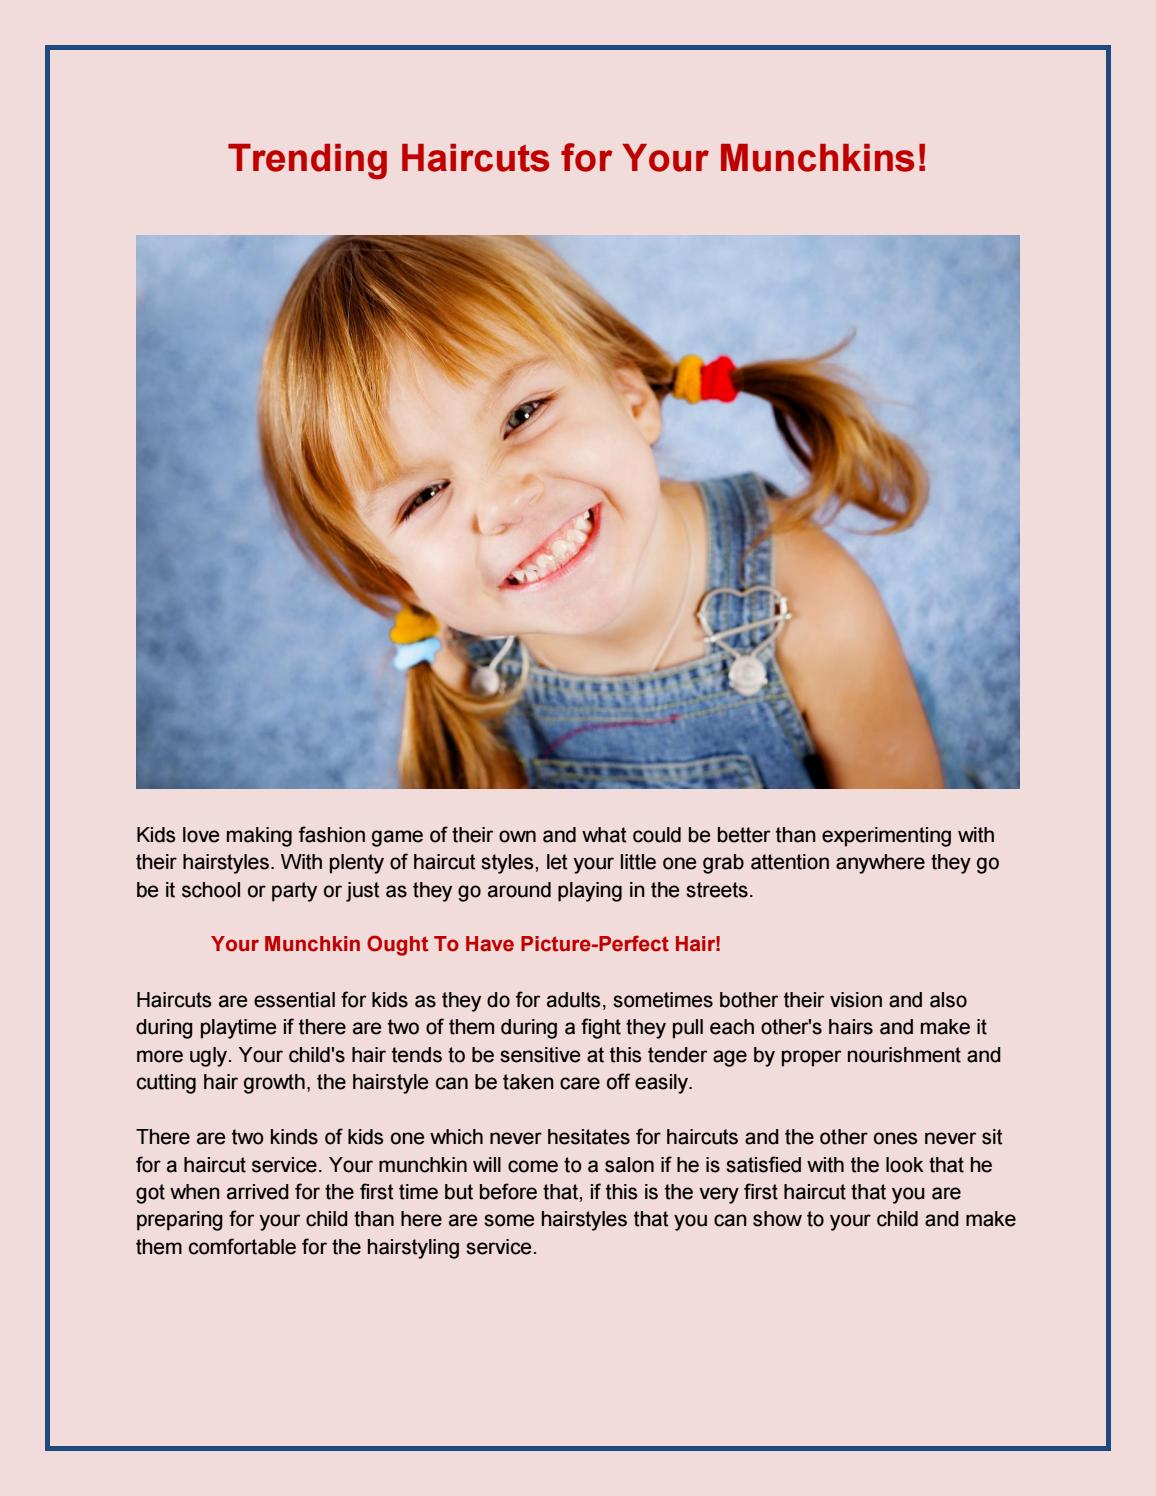 Trending Haircuts For Your Munchkins By Bloom Salon And Spa